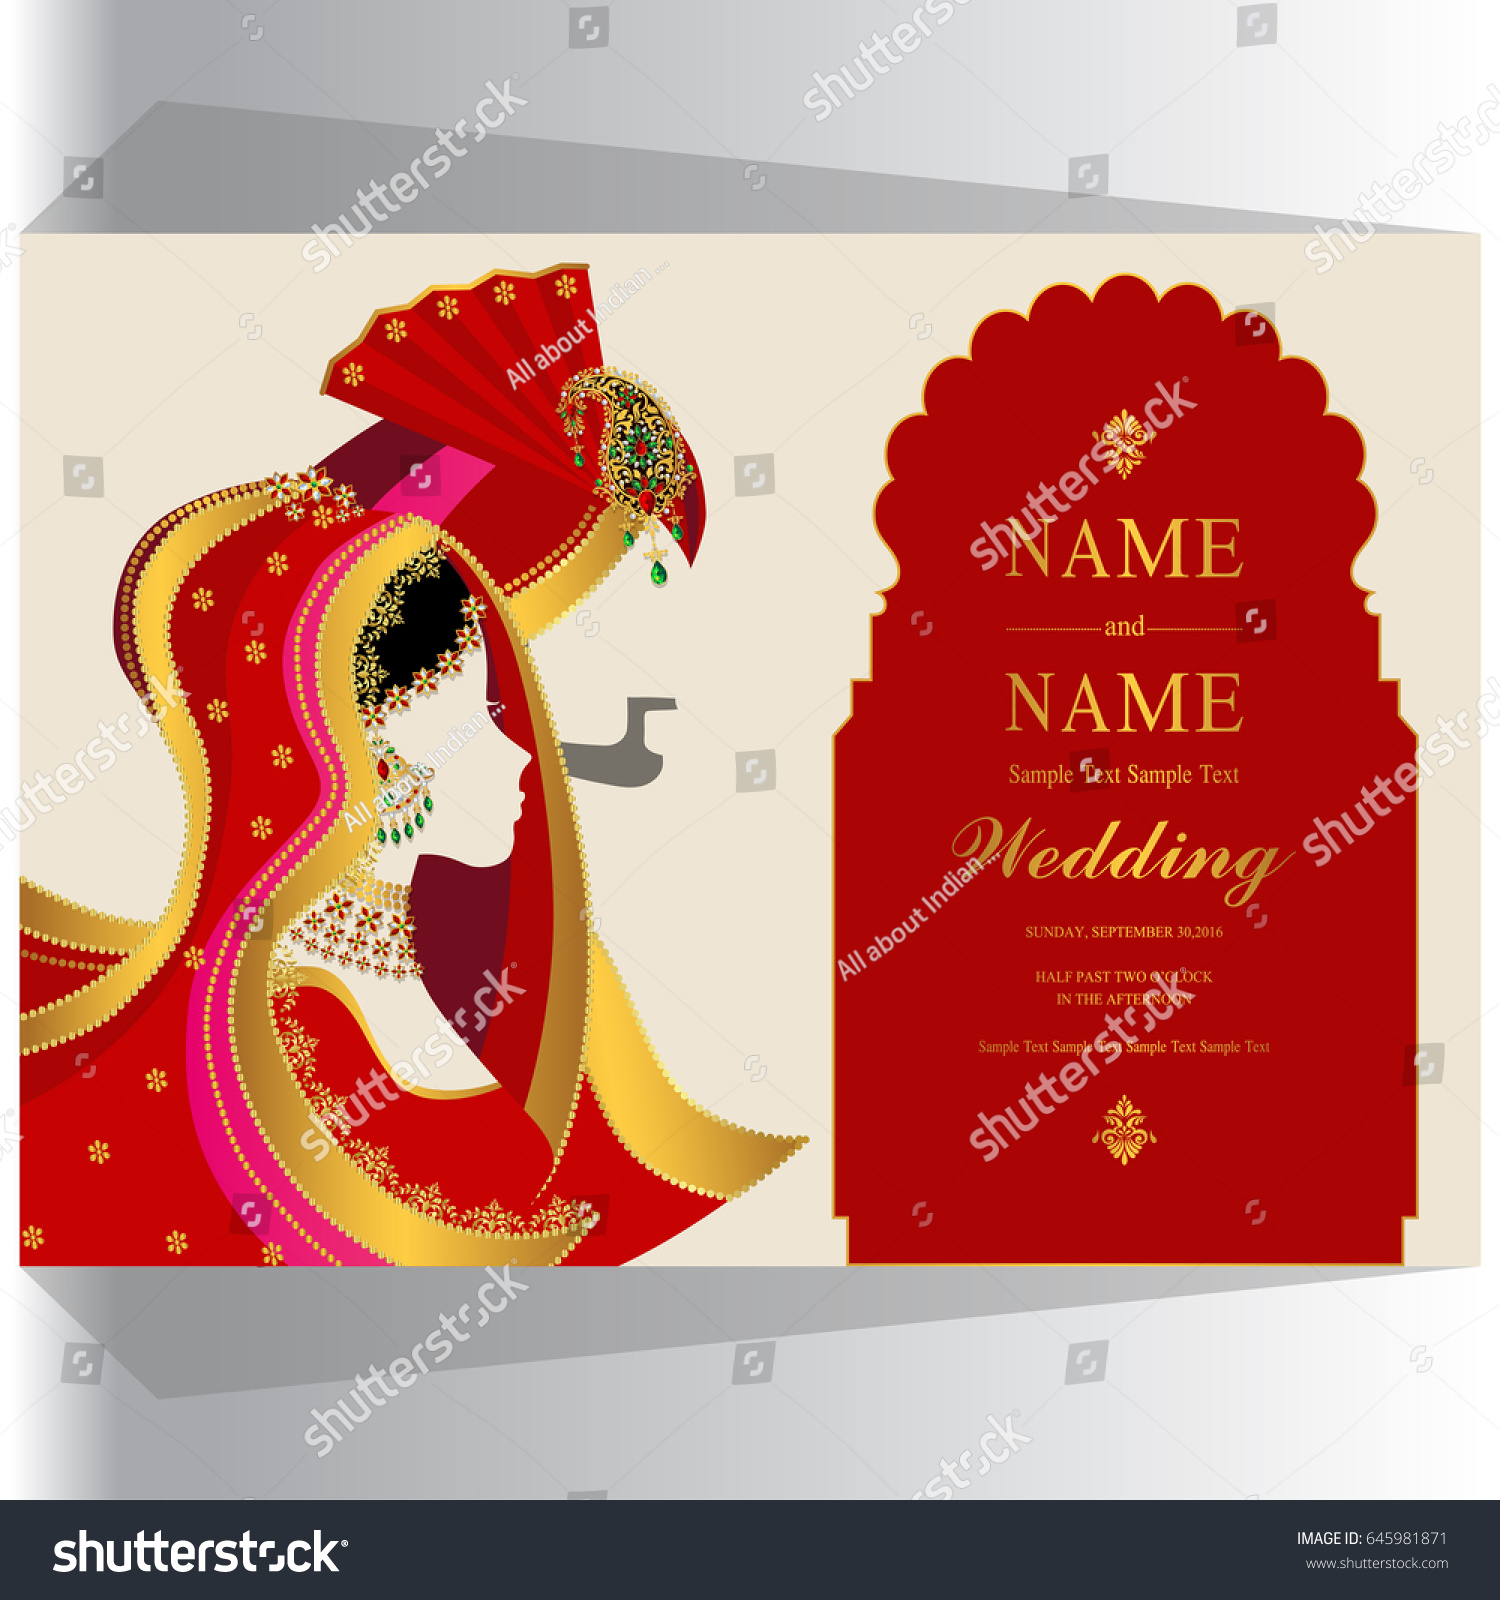 Wedding Invitation Card Templates Indian Man Stock Vector (Royalty ...